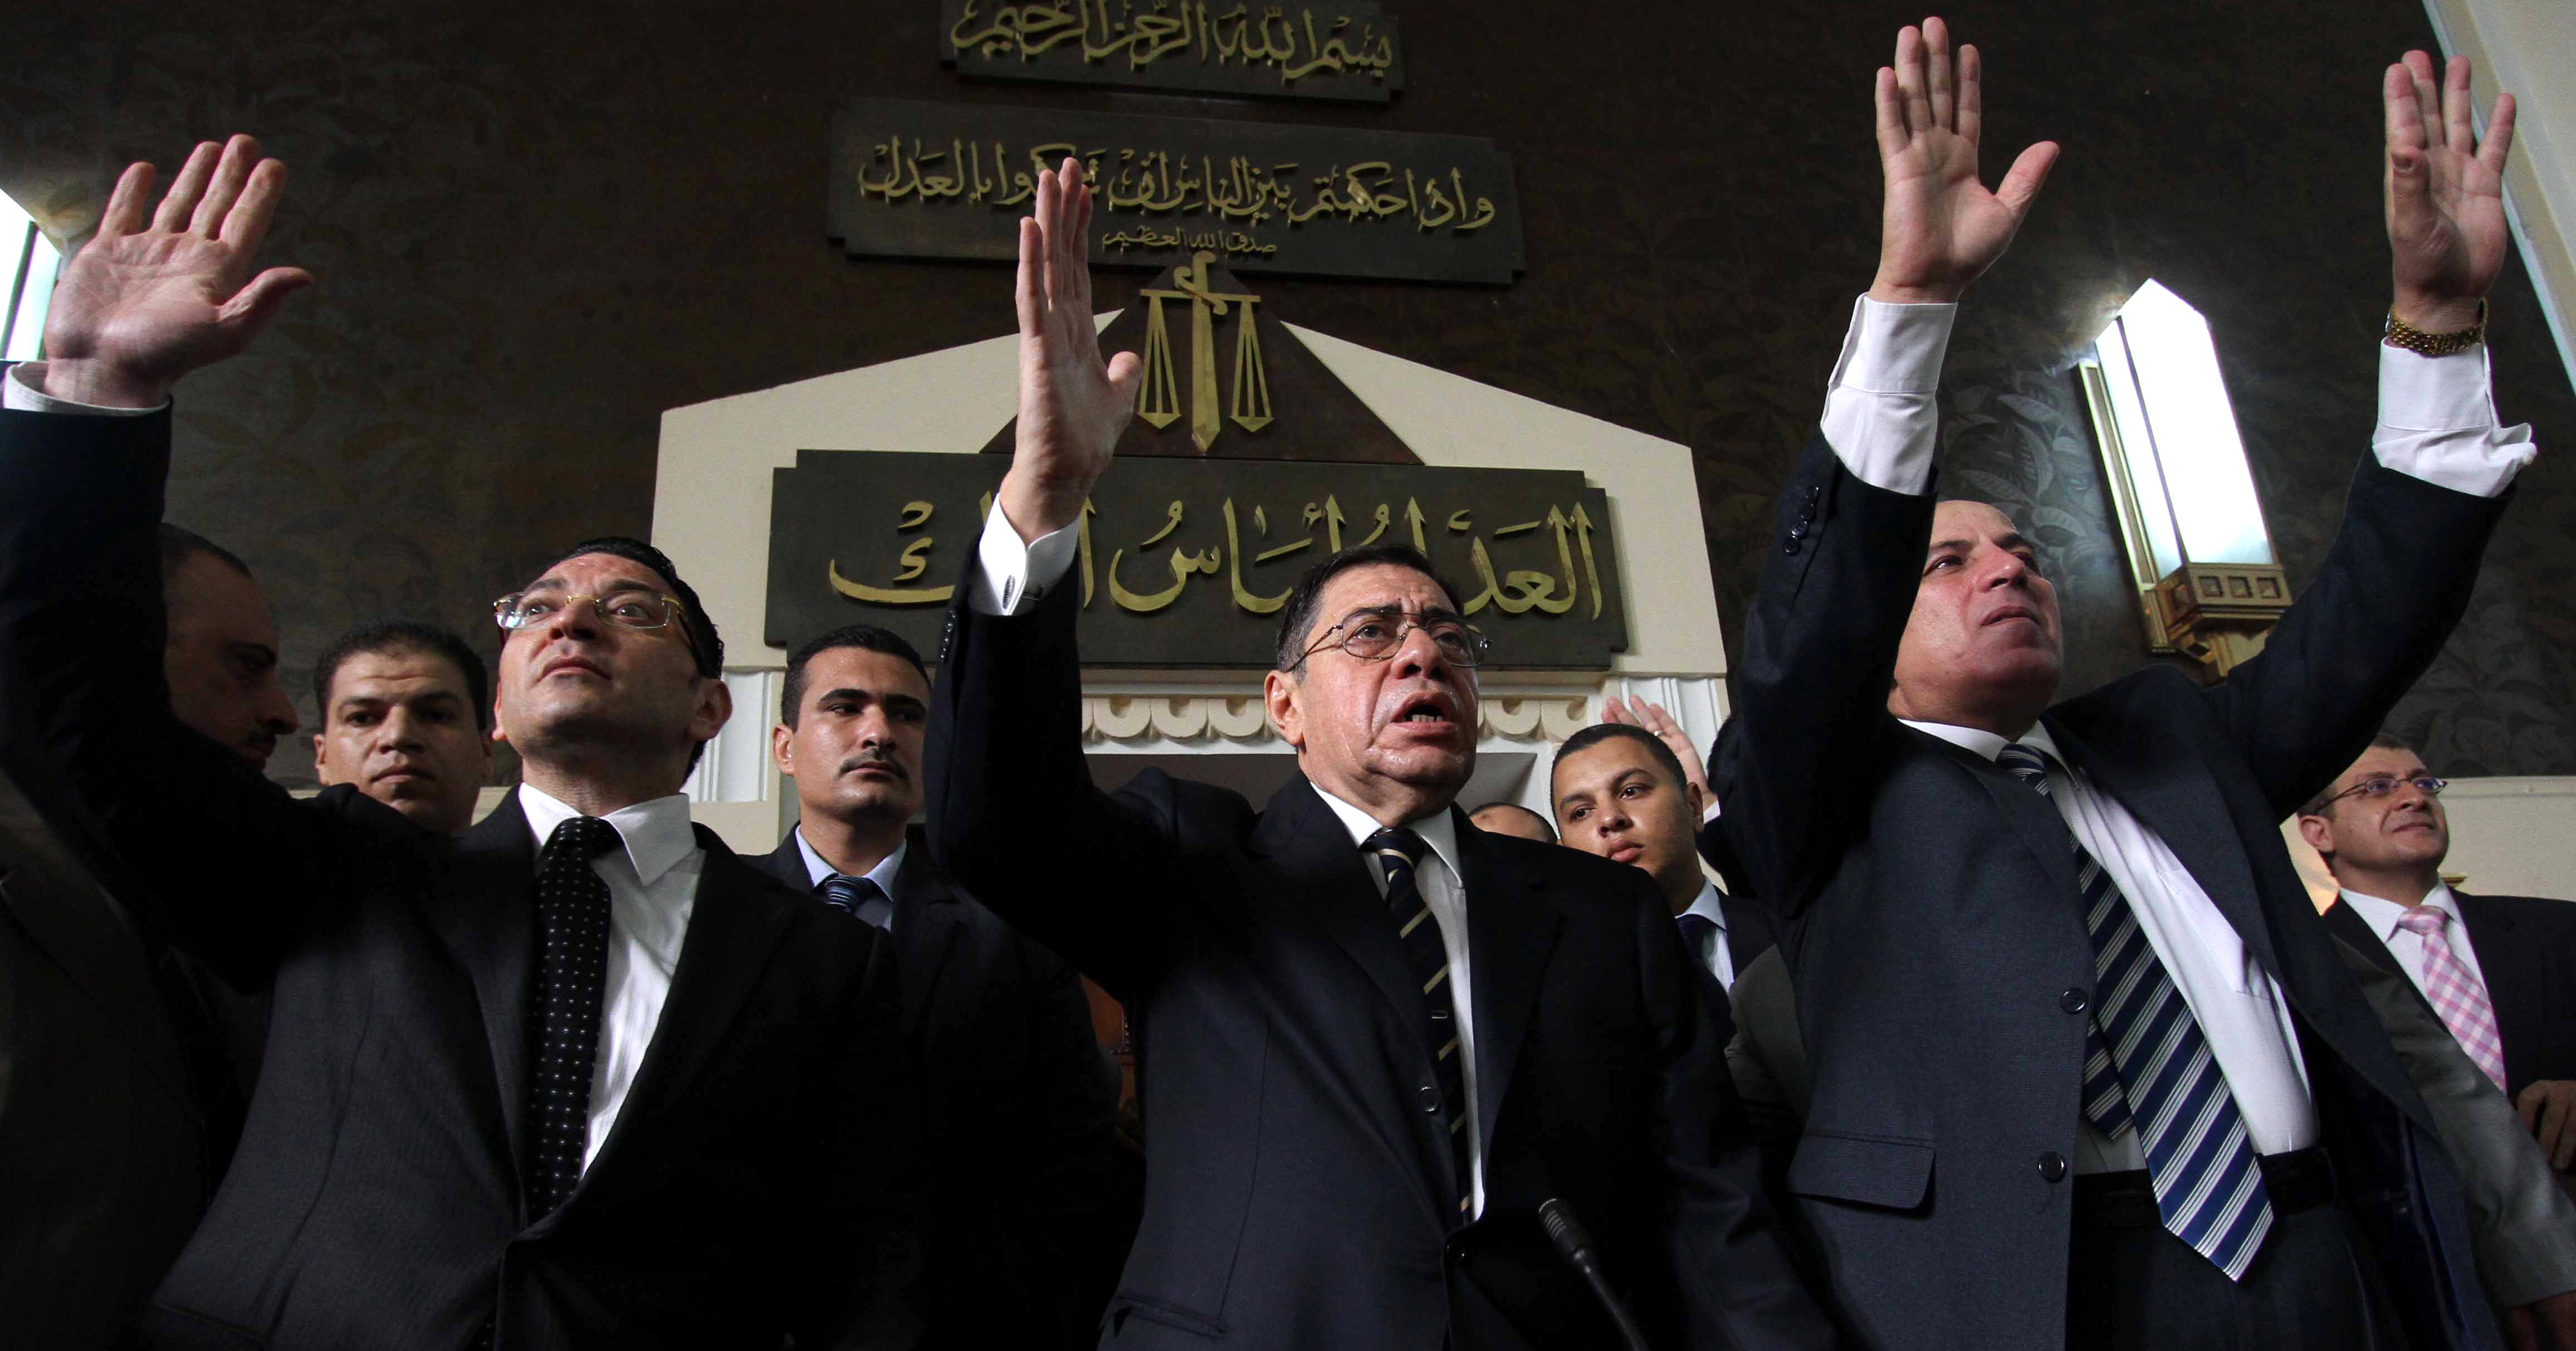 Egyptian General Prosecutor Abdel Meguid Mahmud (C) addresses judges in his office at the high court in Cairo on October 13, 2012. An influential group of Egyptian judges backed state prosecutor Mahmud's refusal to resign after President Morsi ordered his removal on October 11. (Photo credit should read AHMED MAHMUD/AFP/Getty Images)